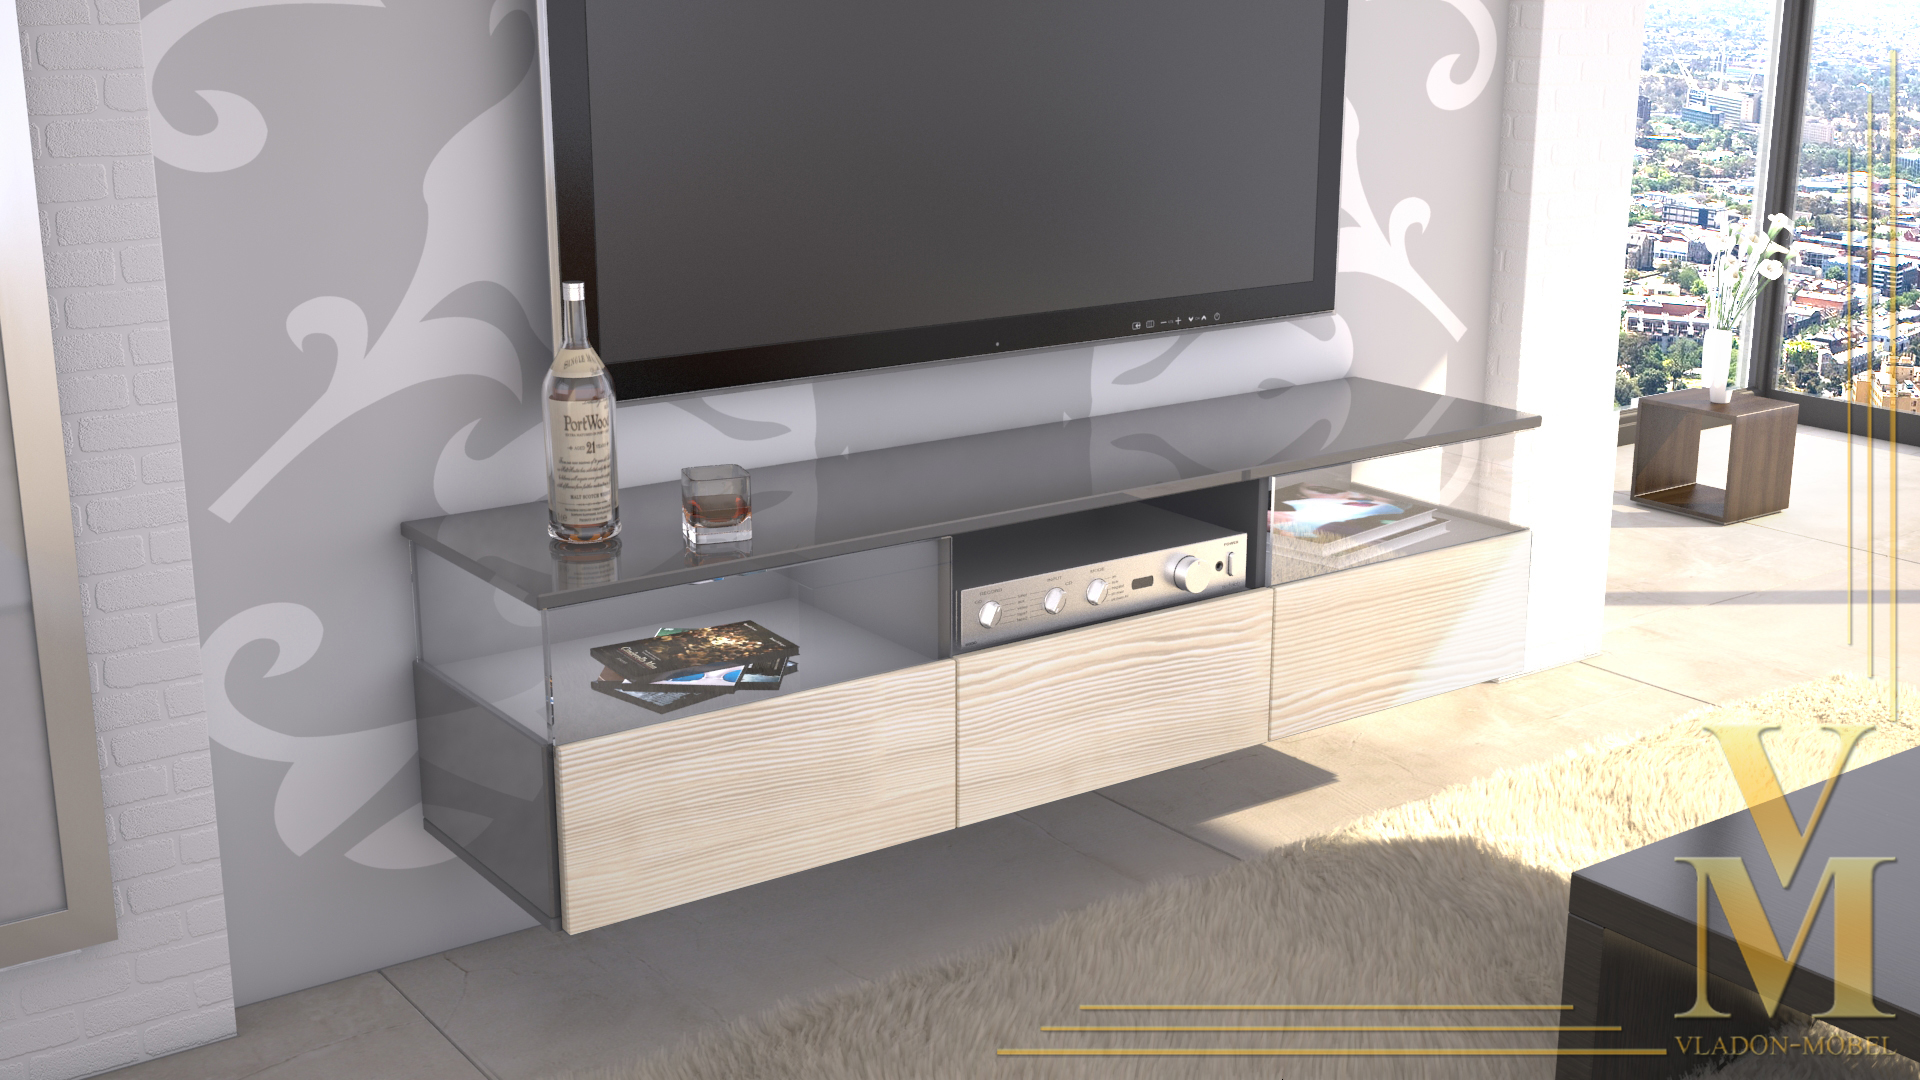 lowboard kommode tv board unterschrank almeria grau hochglanz naturt ne ebay. Black Bedroom Furniture Sets. Home Design Ideas